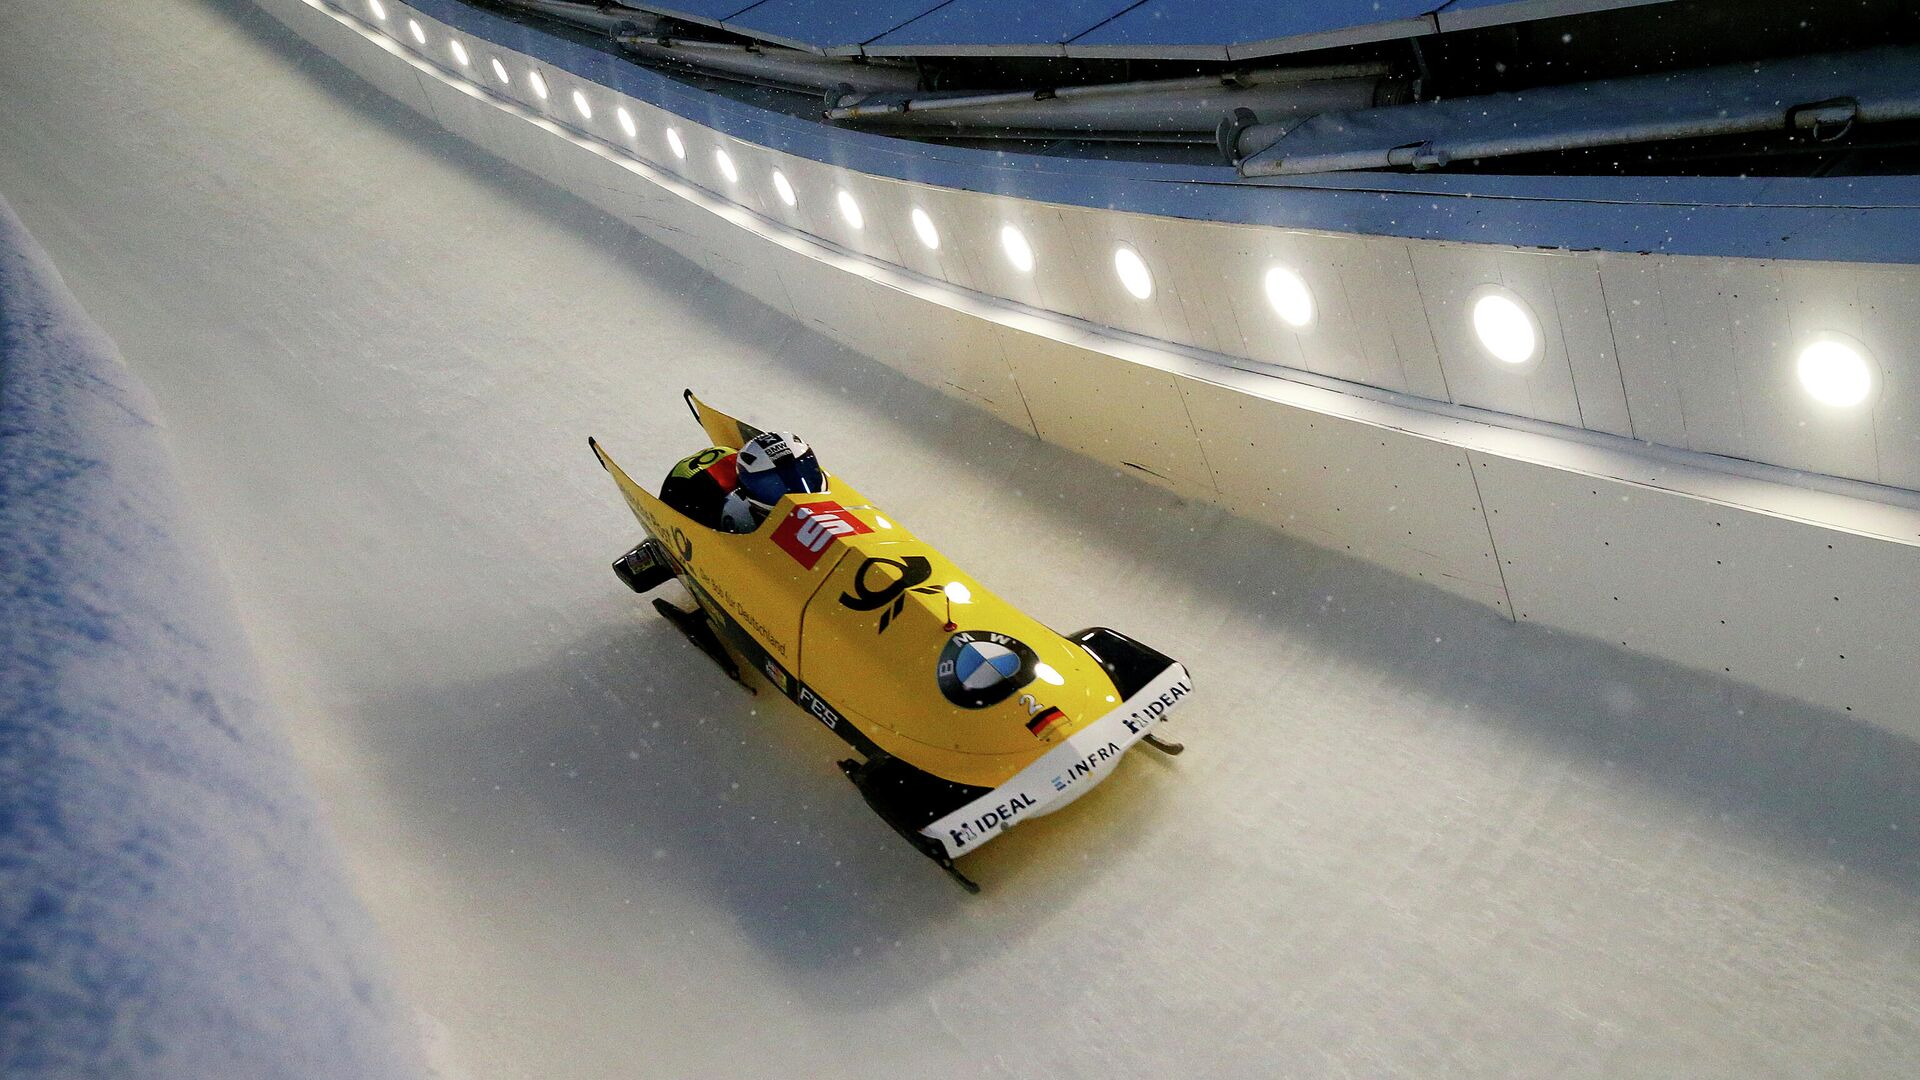 LAKE PLACID, NEW YORK - FEBRUARY 15: Francesco Friedrich and Thorsten Margis of Germany compete in the second run of the two-man bobsled race on day 1 of the 2019 IBSF World Cup Bobsled & Skeleton at the Mount Van Hoevenberg Olympic Bobsled Run on February 15, 2019 in Lake Placid, New York.   Maddie Meyer/Getty Images/AFP - РИА Новости, 1920, 30.01.2021